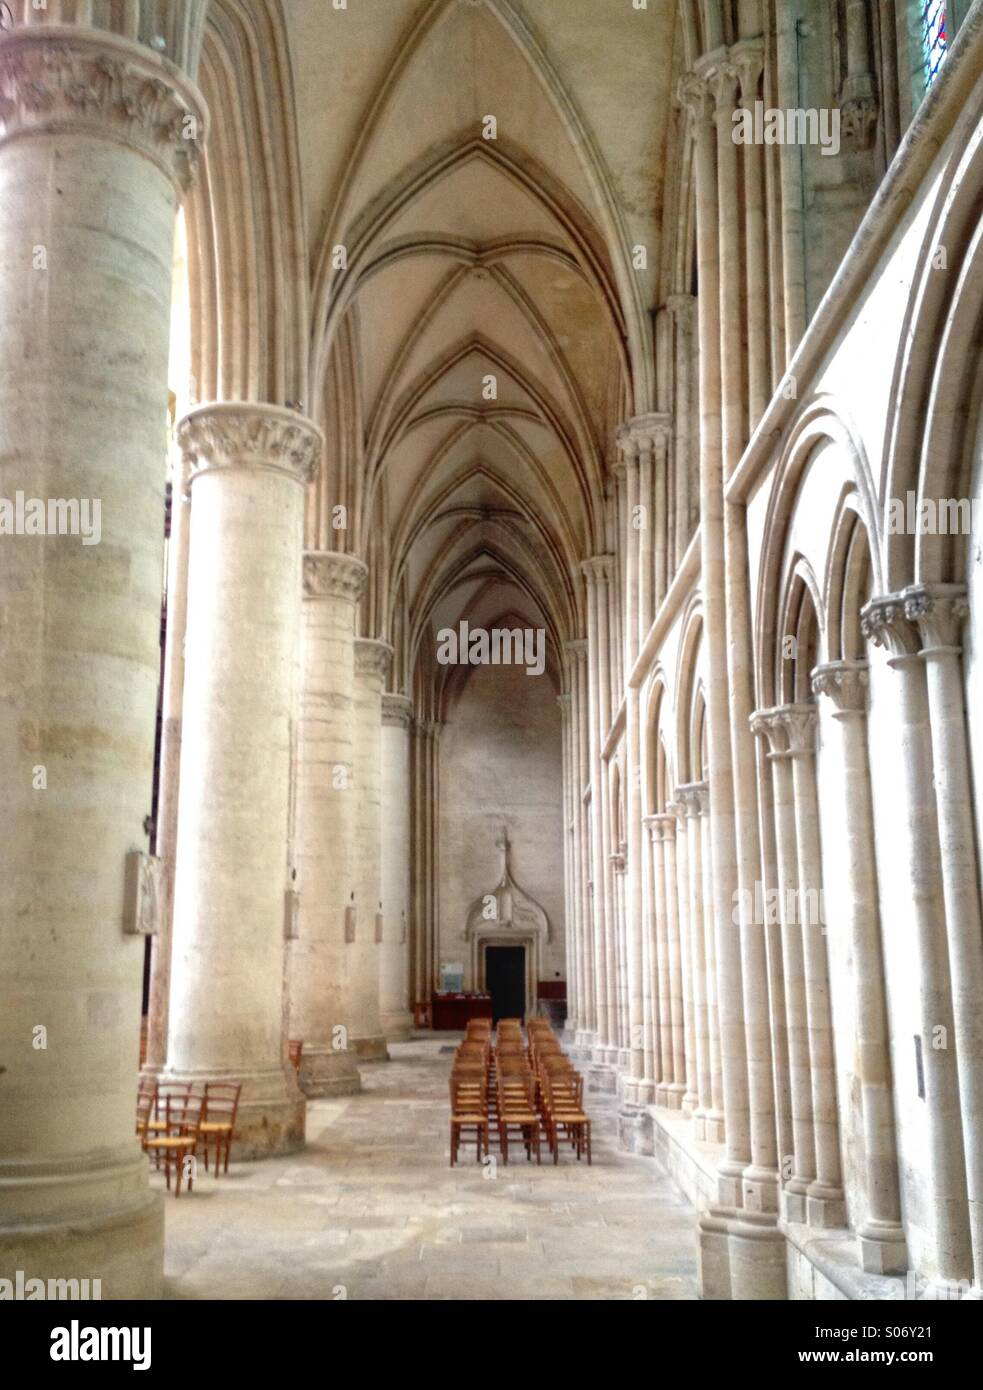 Interior with chairs and columns. Sees Cathedral, Orne, normandy, France - Stock Image